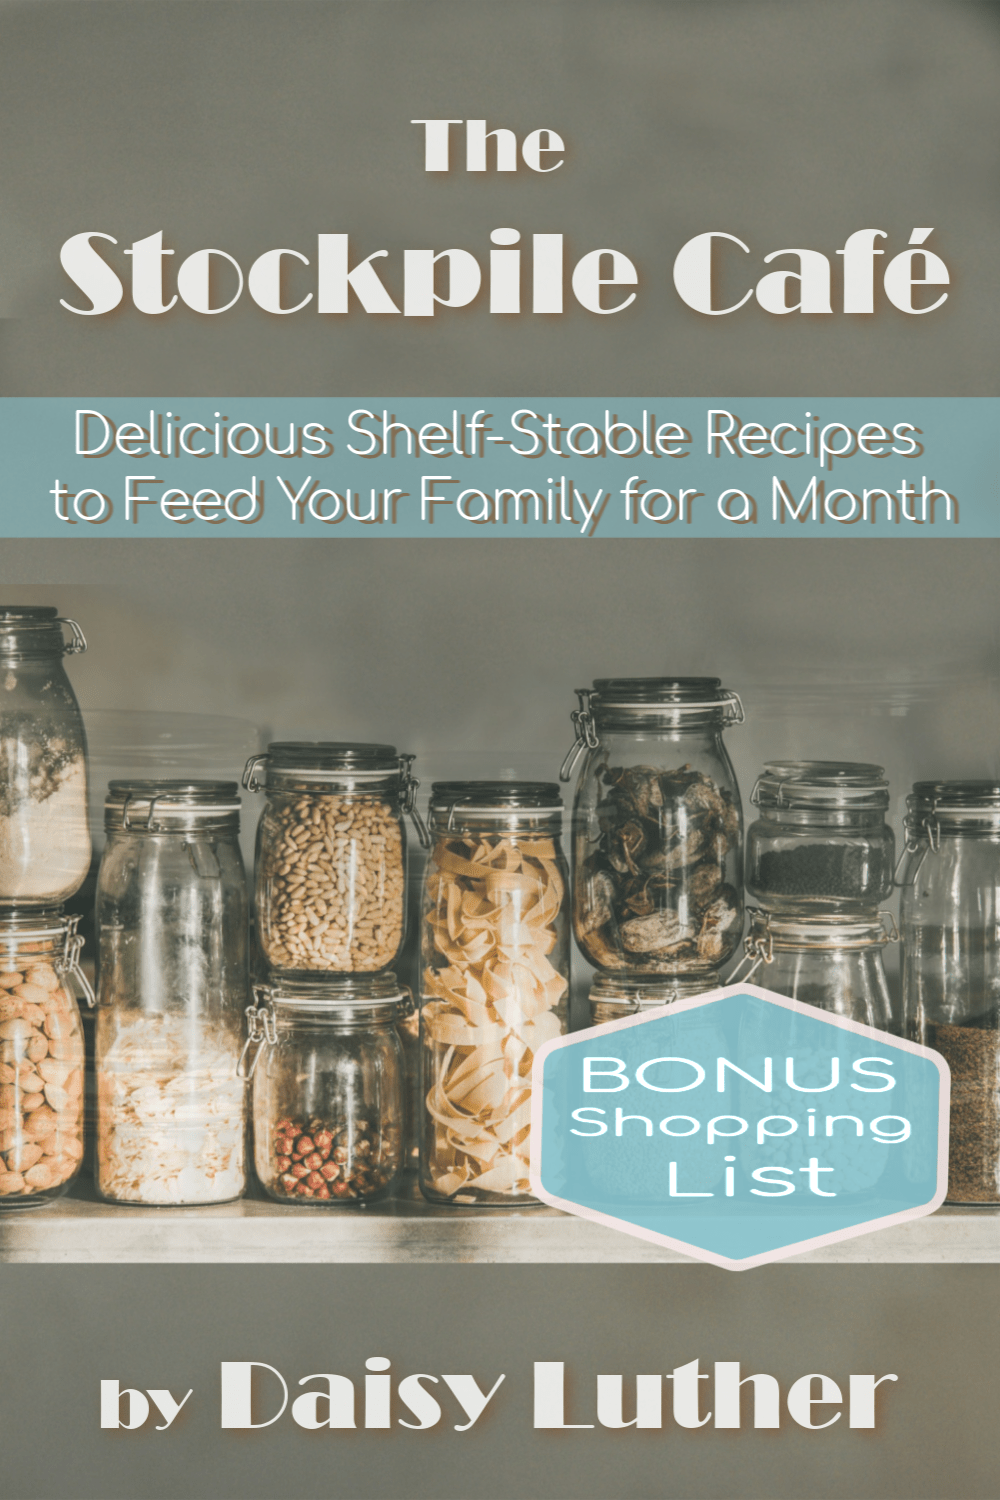 Eating from your stockpile for a month doesn\'t have to be boring and unpleasant. If it\'s nonstop beans and rice, you\'re doing something wrong. Check out these unique, shelf-stable recipes.